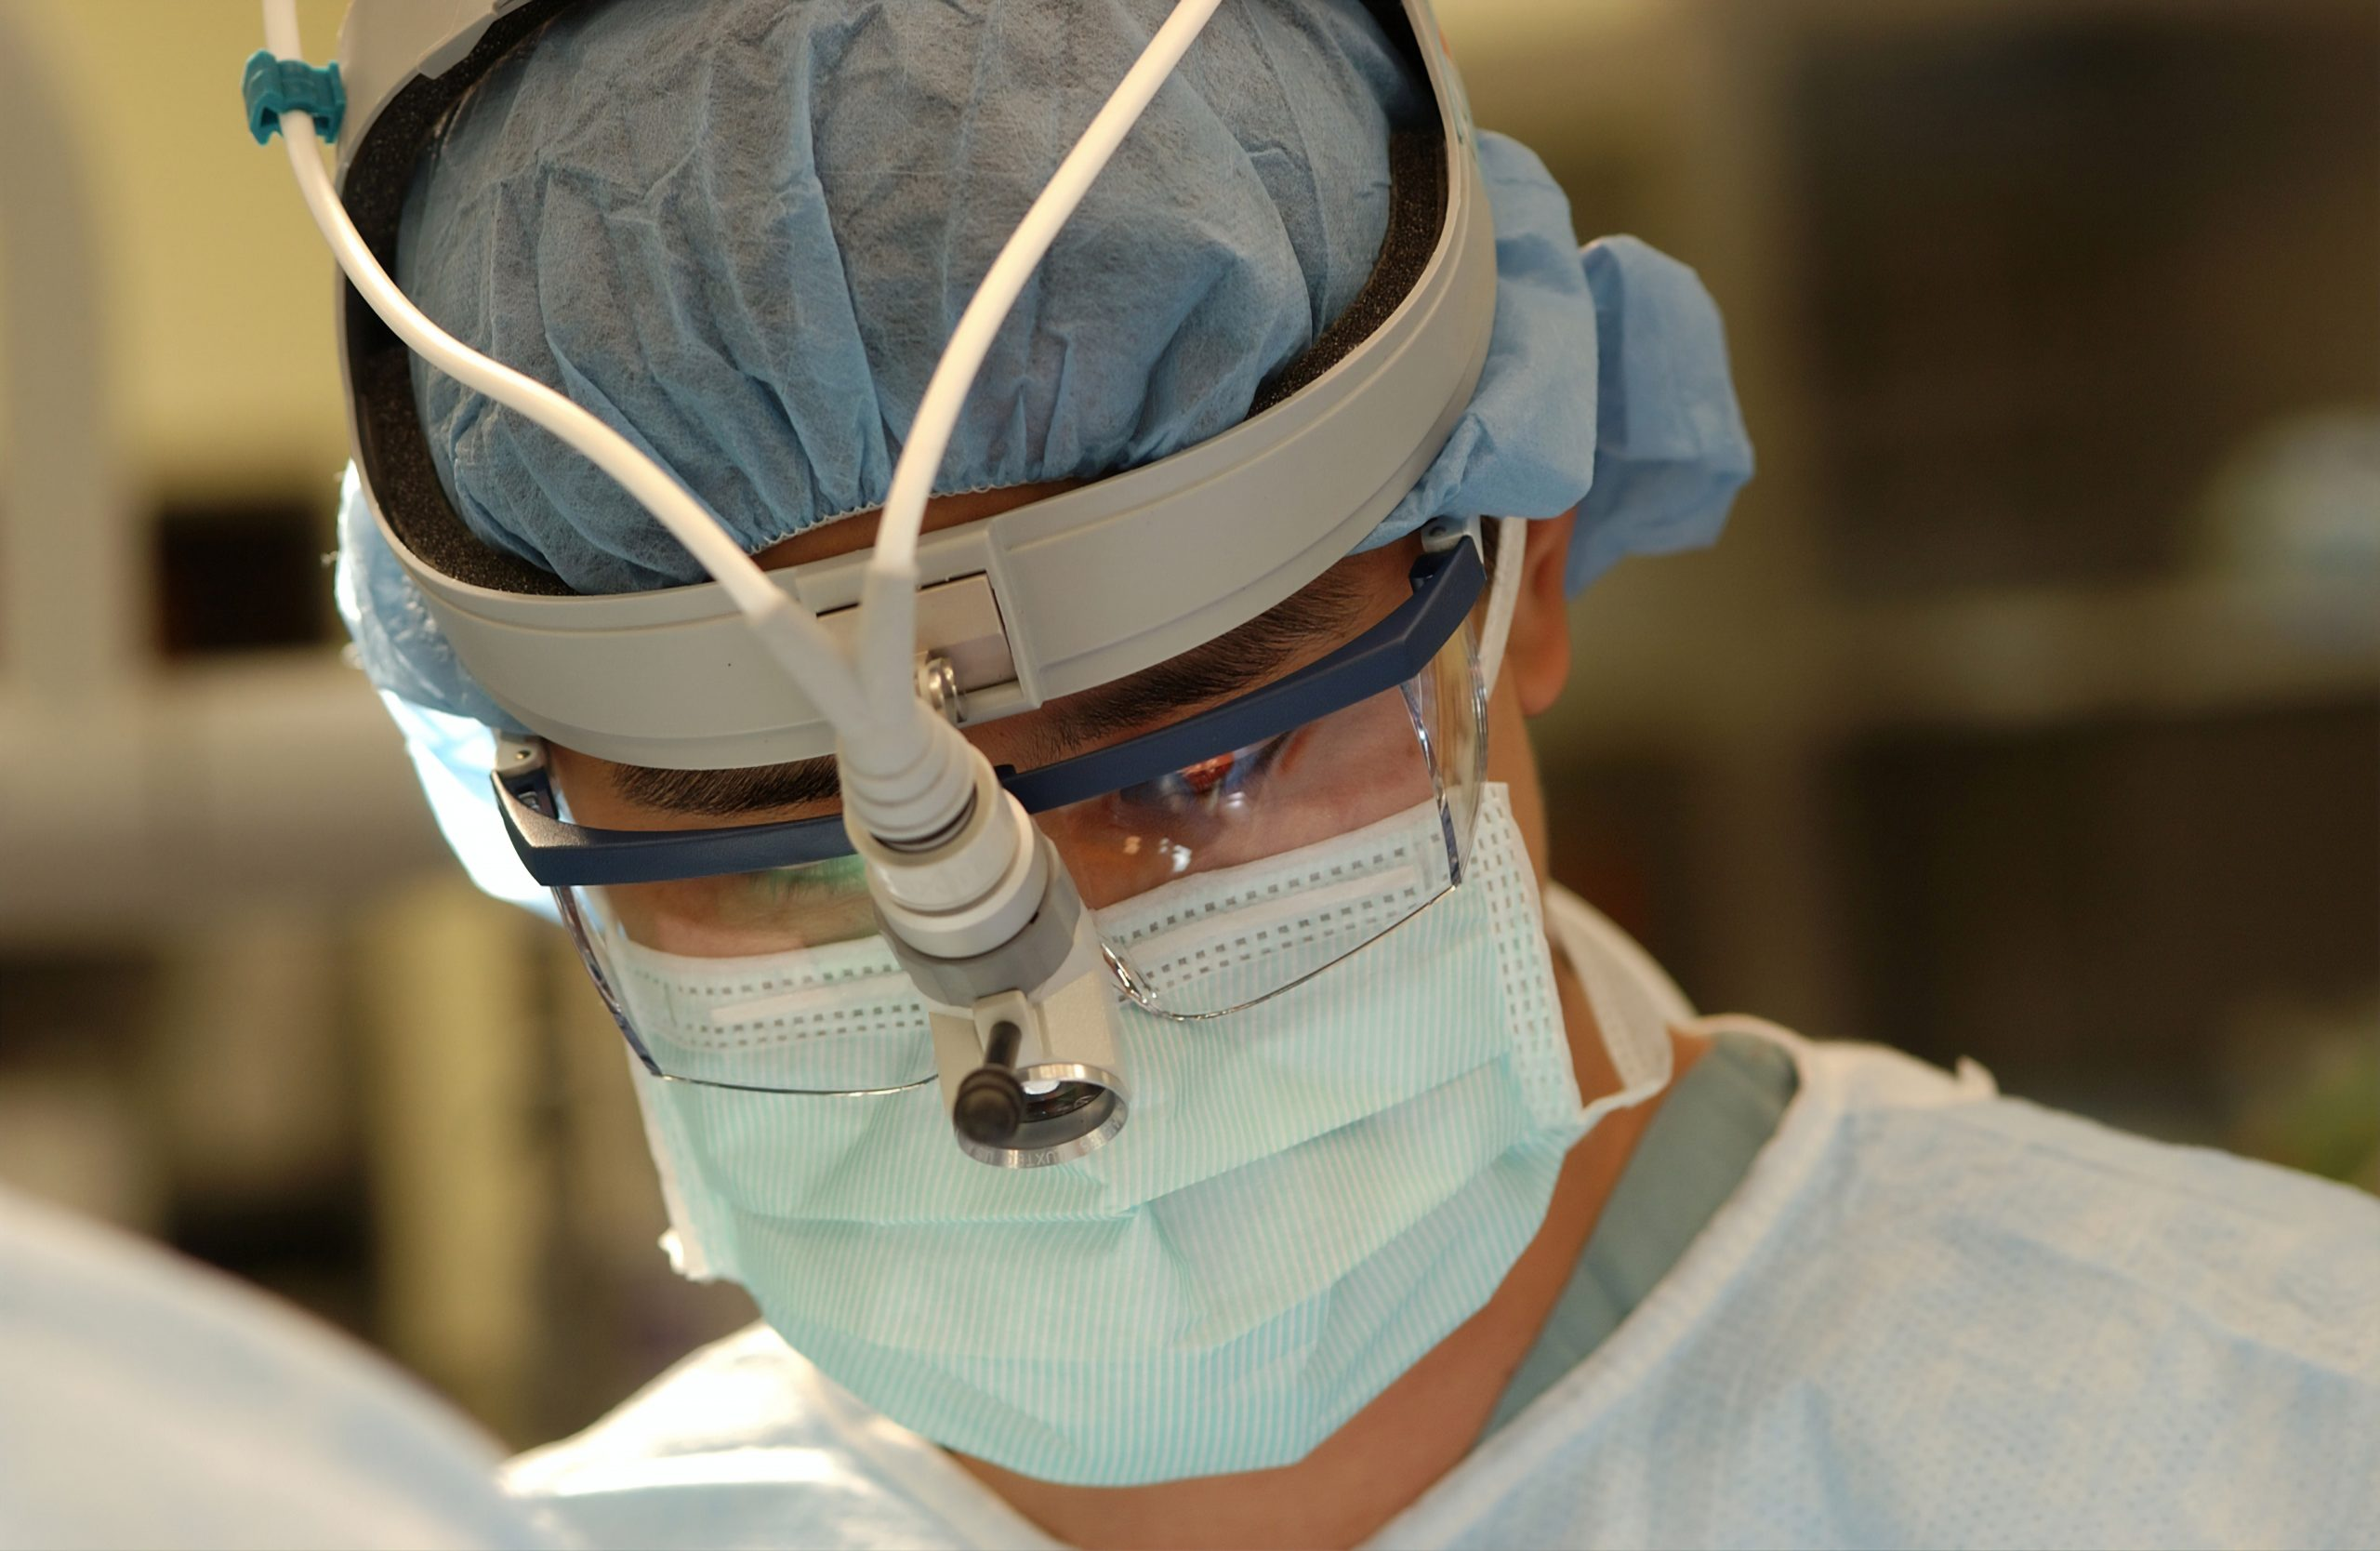 Surgeon who could be administering a heart transplant.